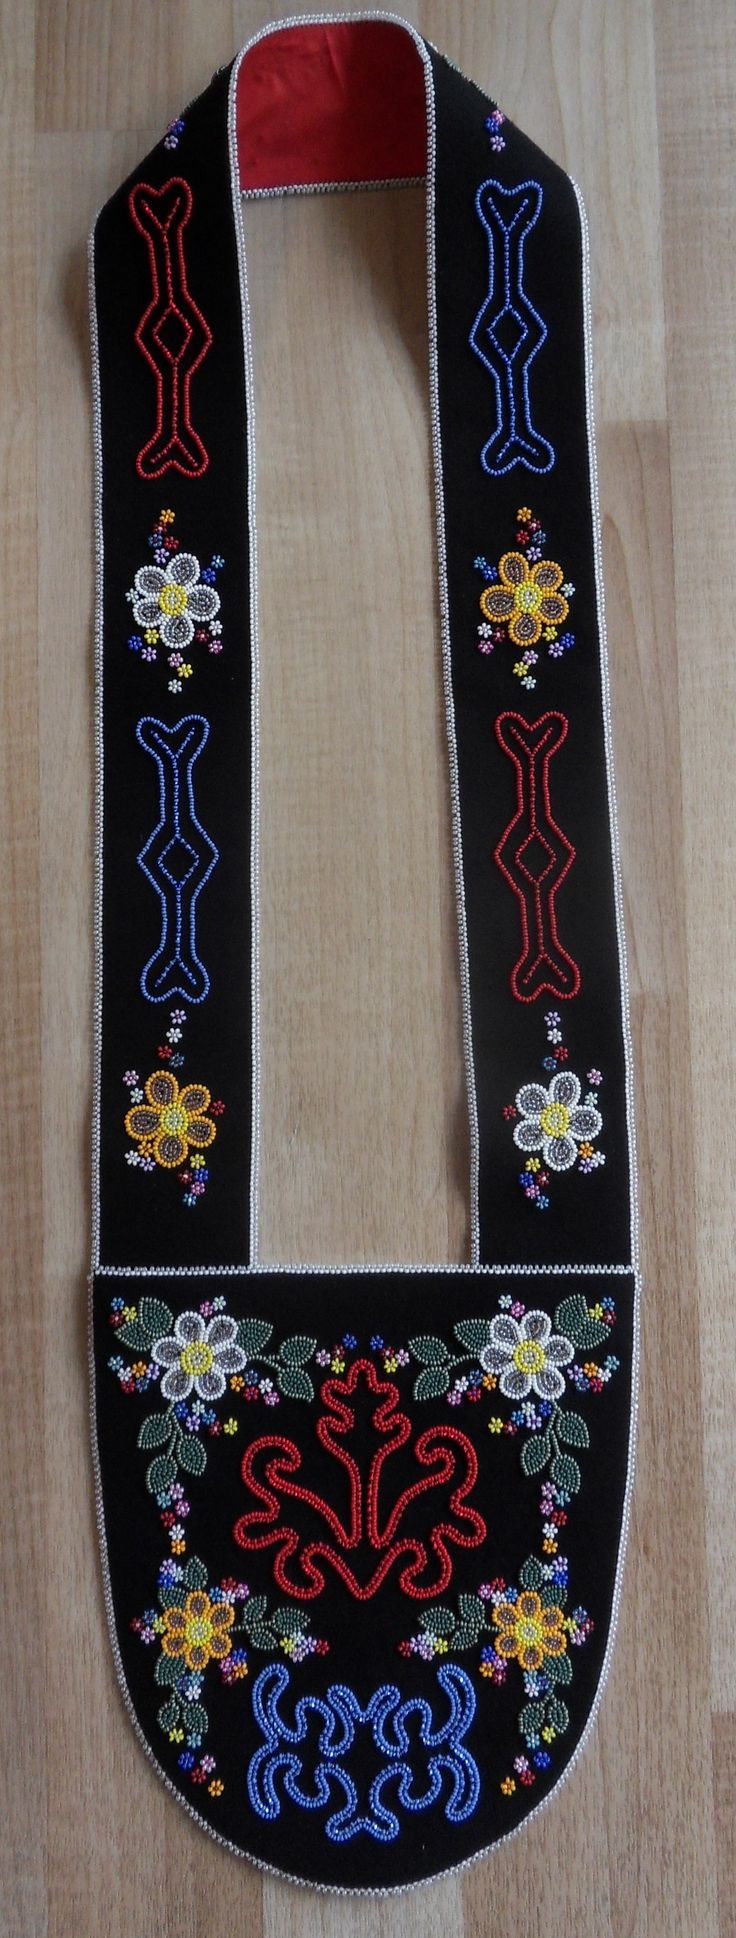 ~Following Tradition~ A Tahltan Inspired Bandolier Bag: Beaded with traditional Tahltan symbols and floral beadwork by Carmen Dennis (Tahltan)